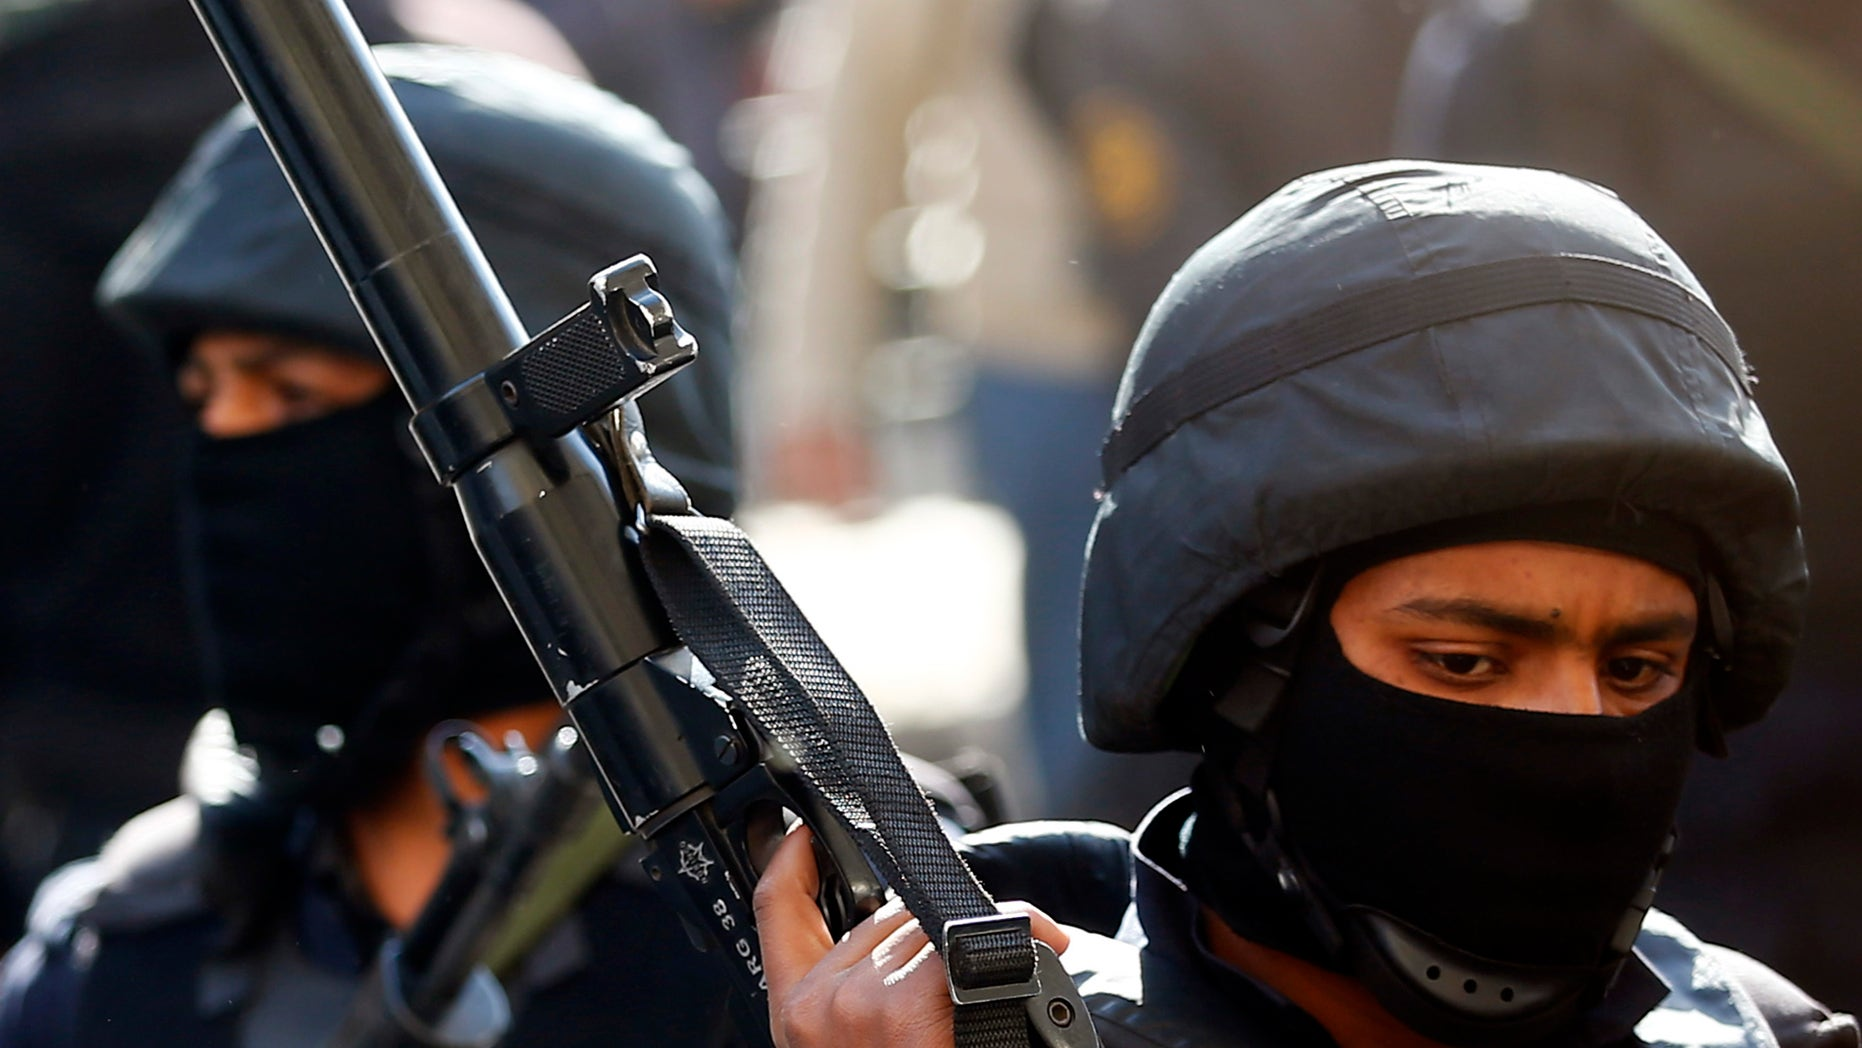 Egyptian police in protective gear.